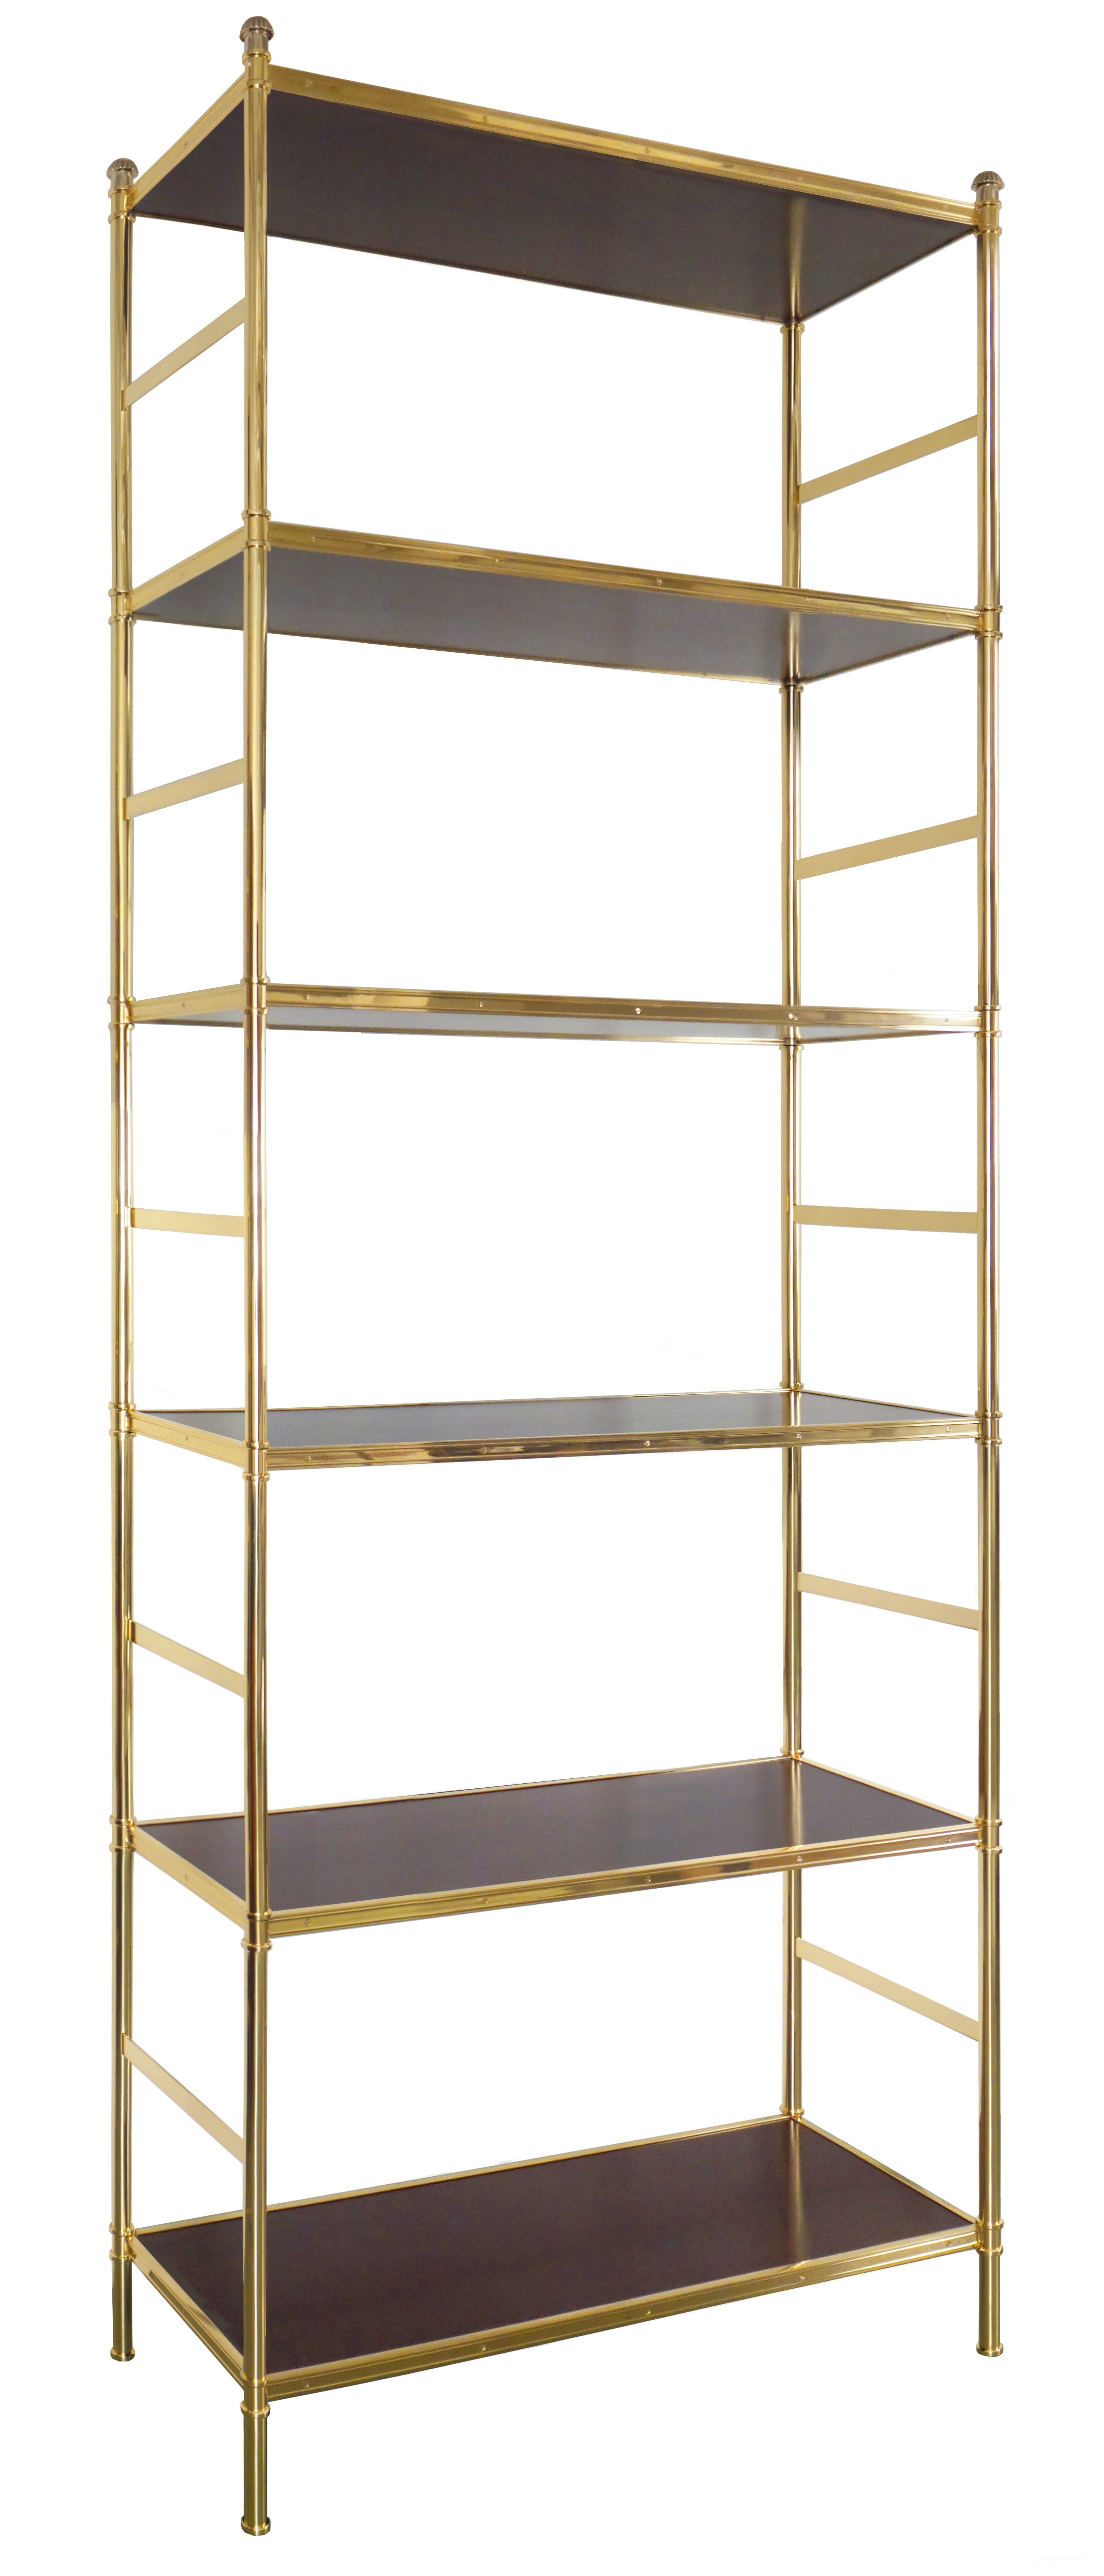 The Cole Porter Etagere By Victoria Son Price On Request